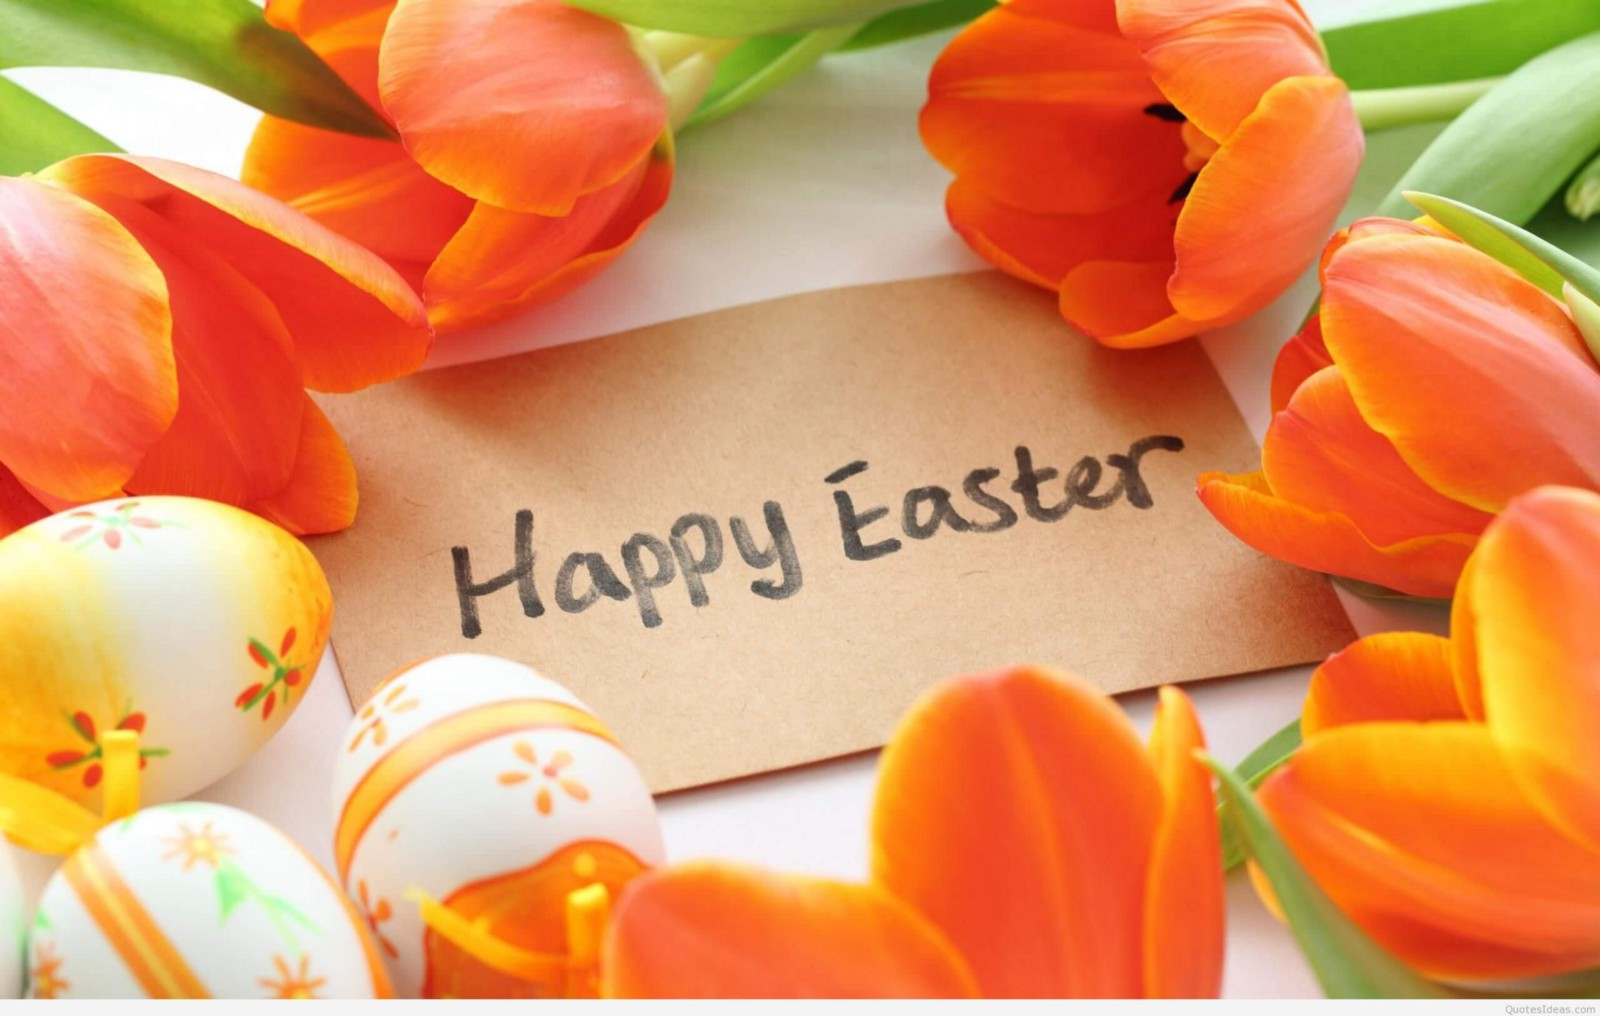 Happy Easter 2019 Wishes Quotes From The Bible Raj Medium